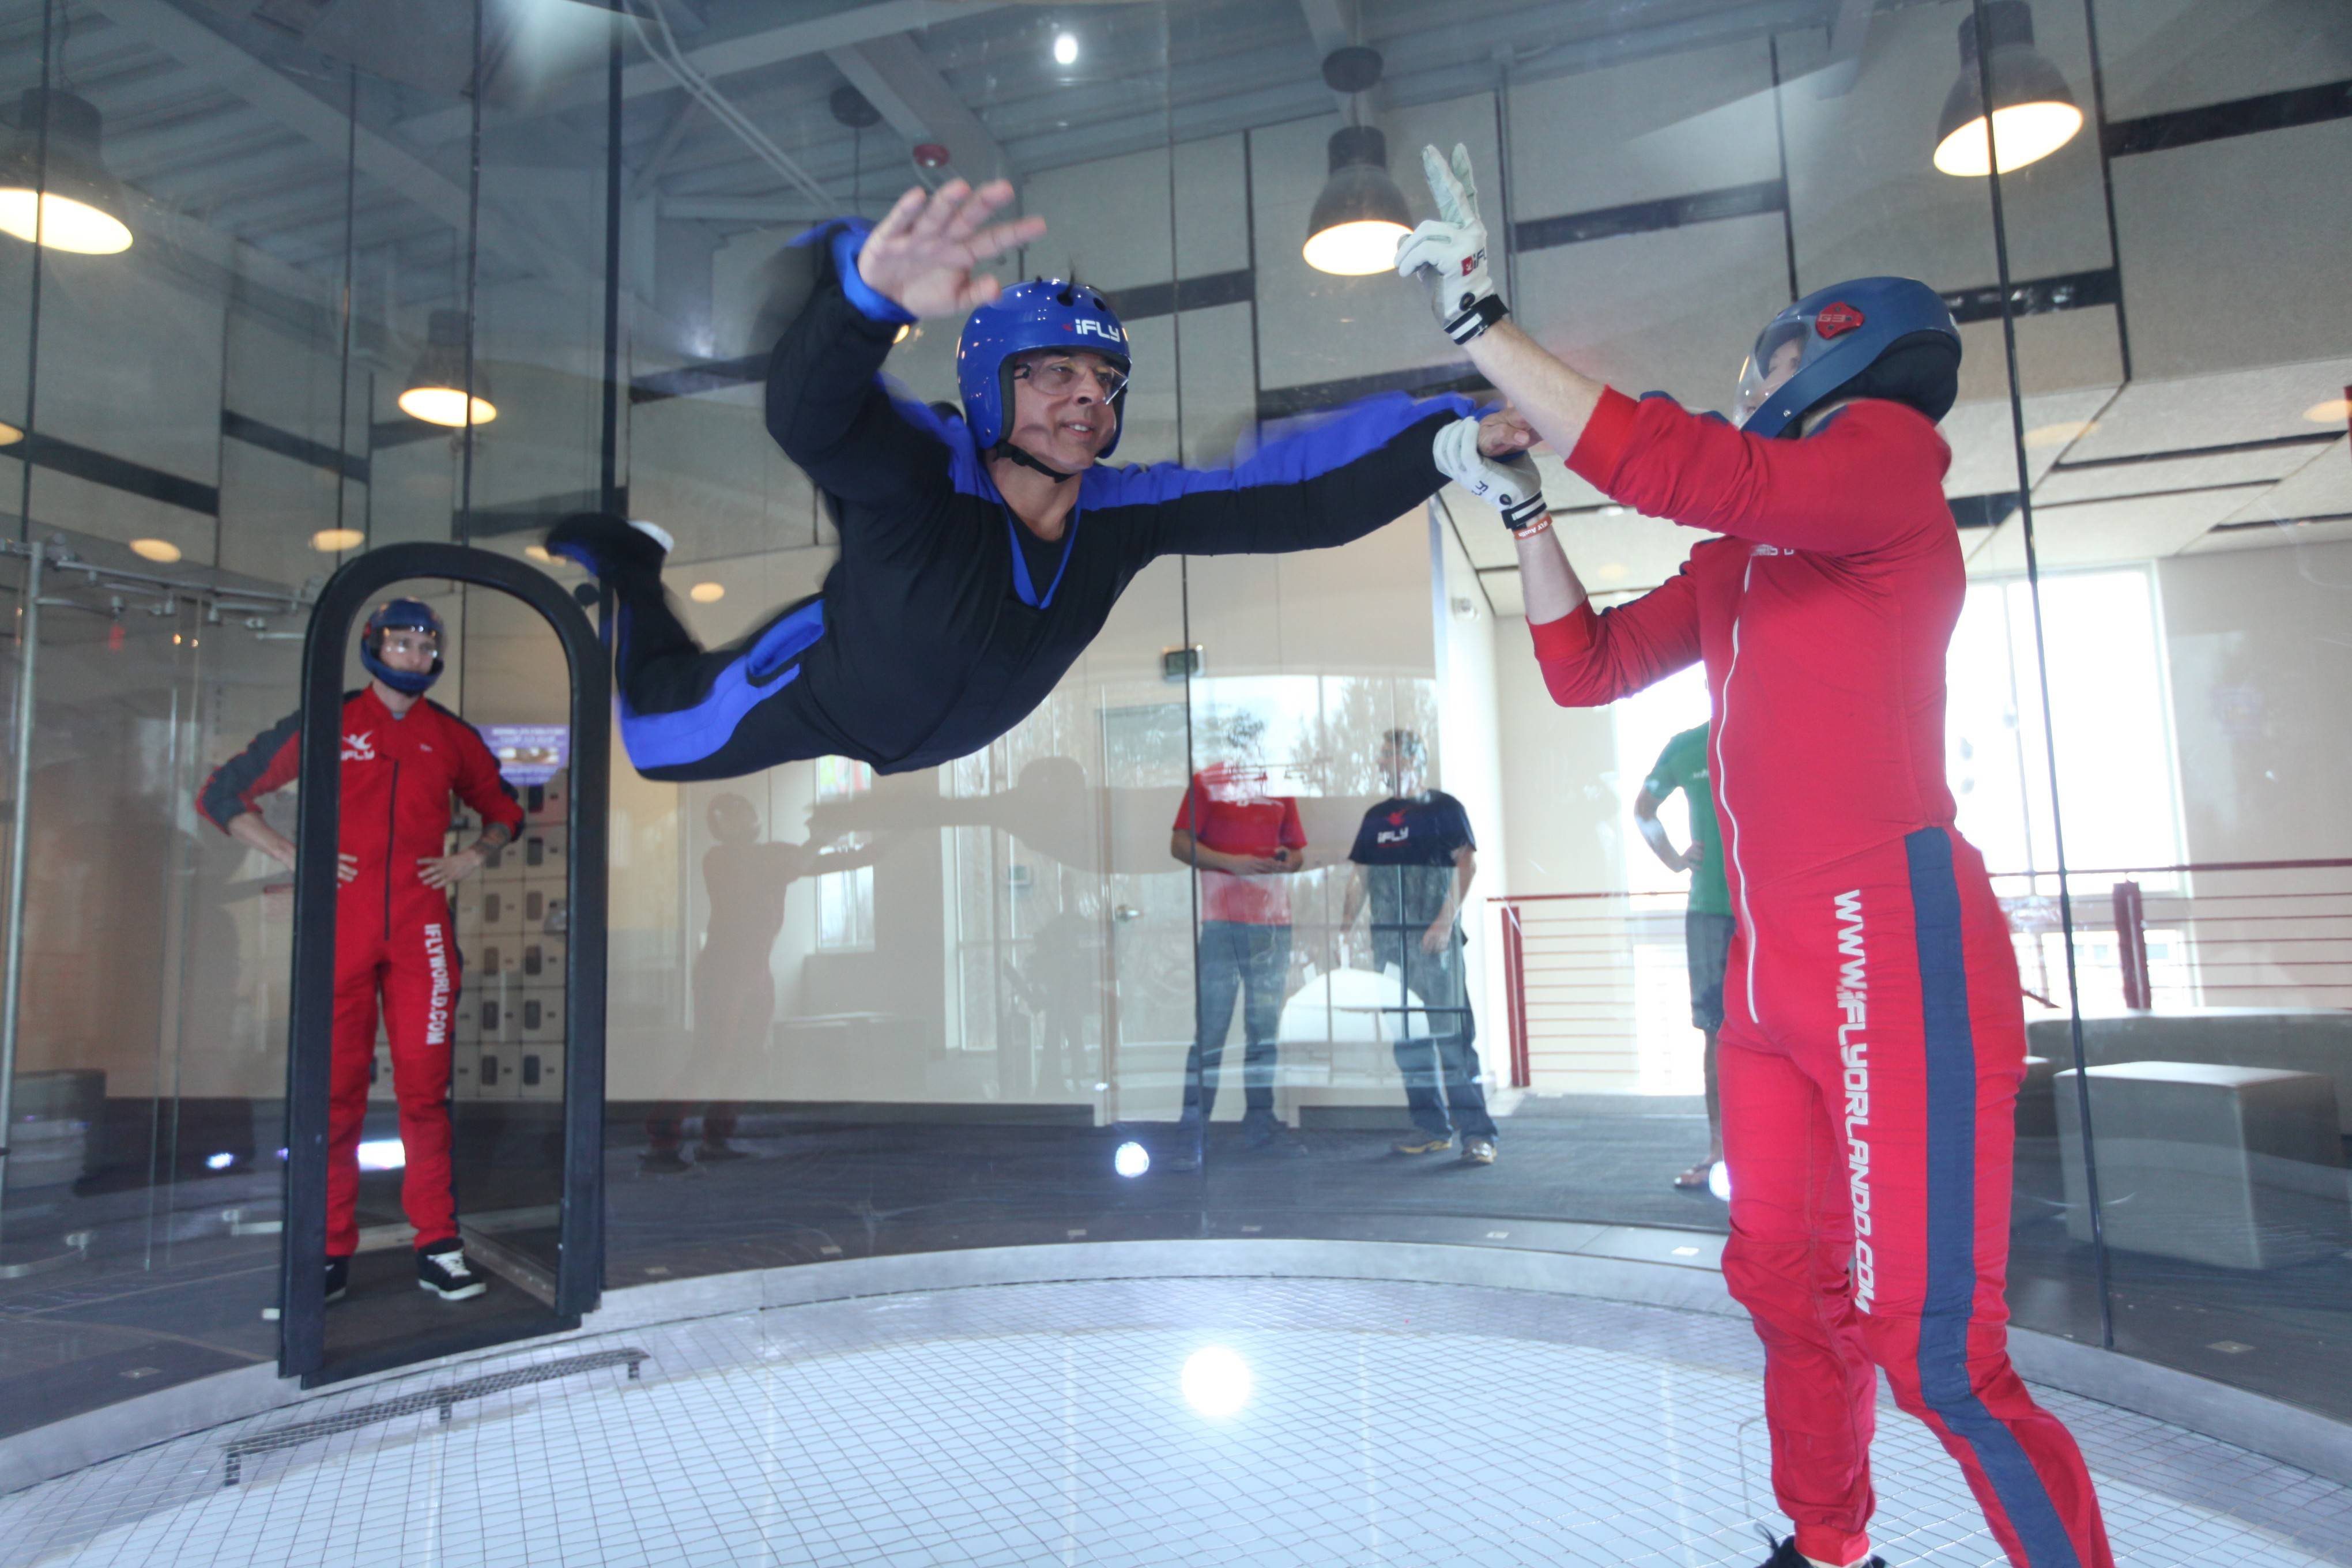 A fan system blowing through a flight chamber creates the conditions for indoor sky diving, and instructors at iFly facilities like the one likely coming to Naperville help people start flying from the ground up.